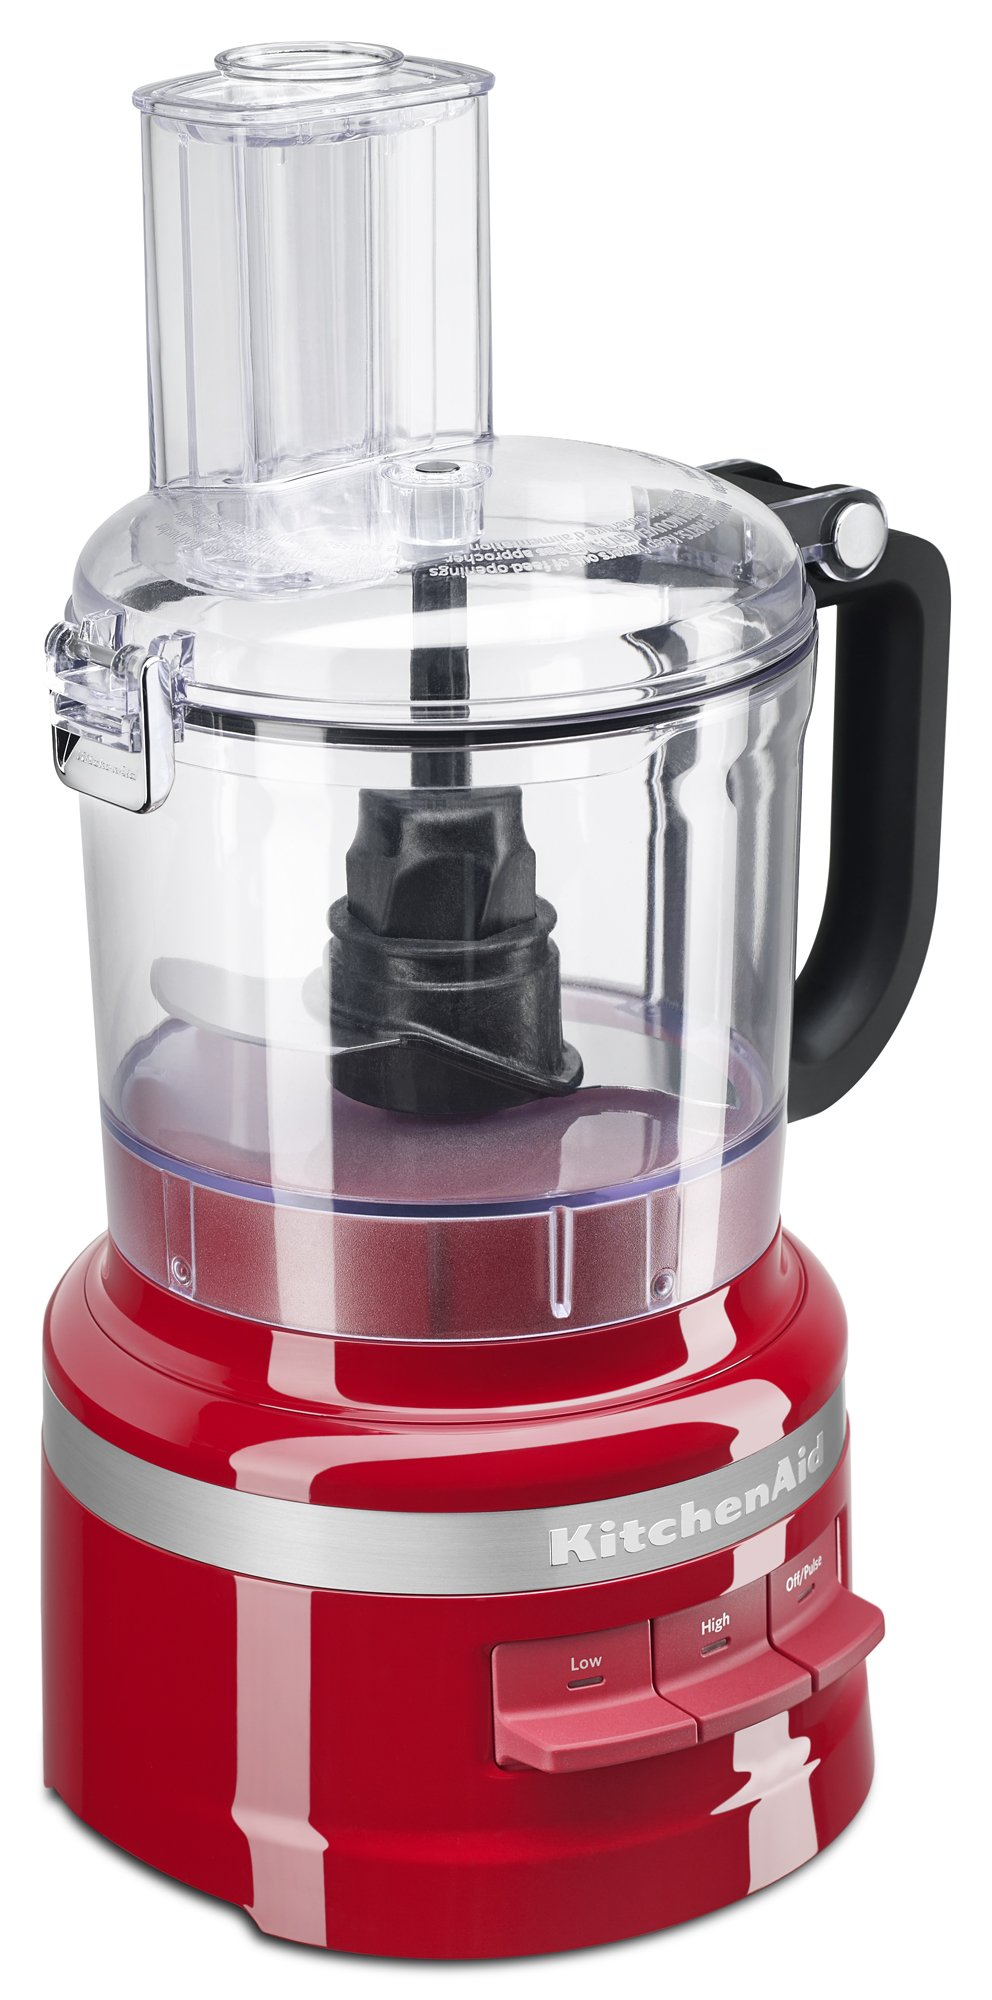 KitchenAid KFP0718ER Food Processor, 7_Cup, Empire Red